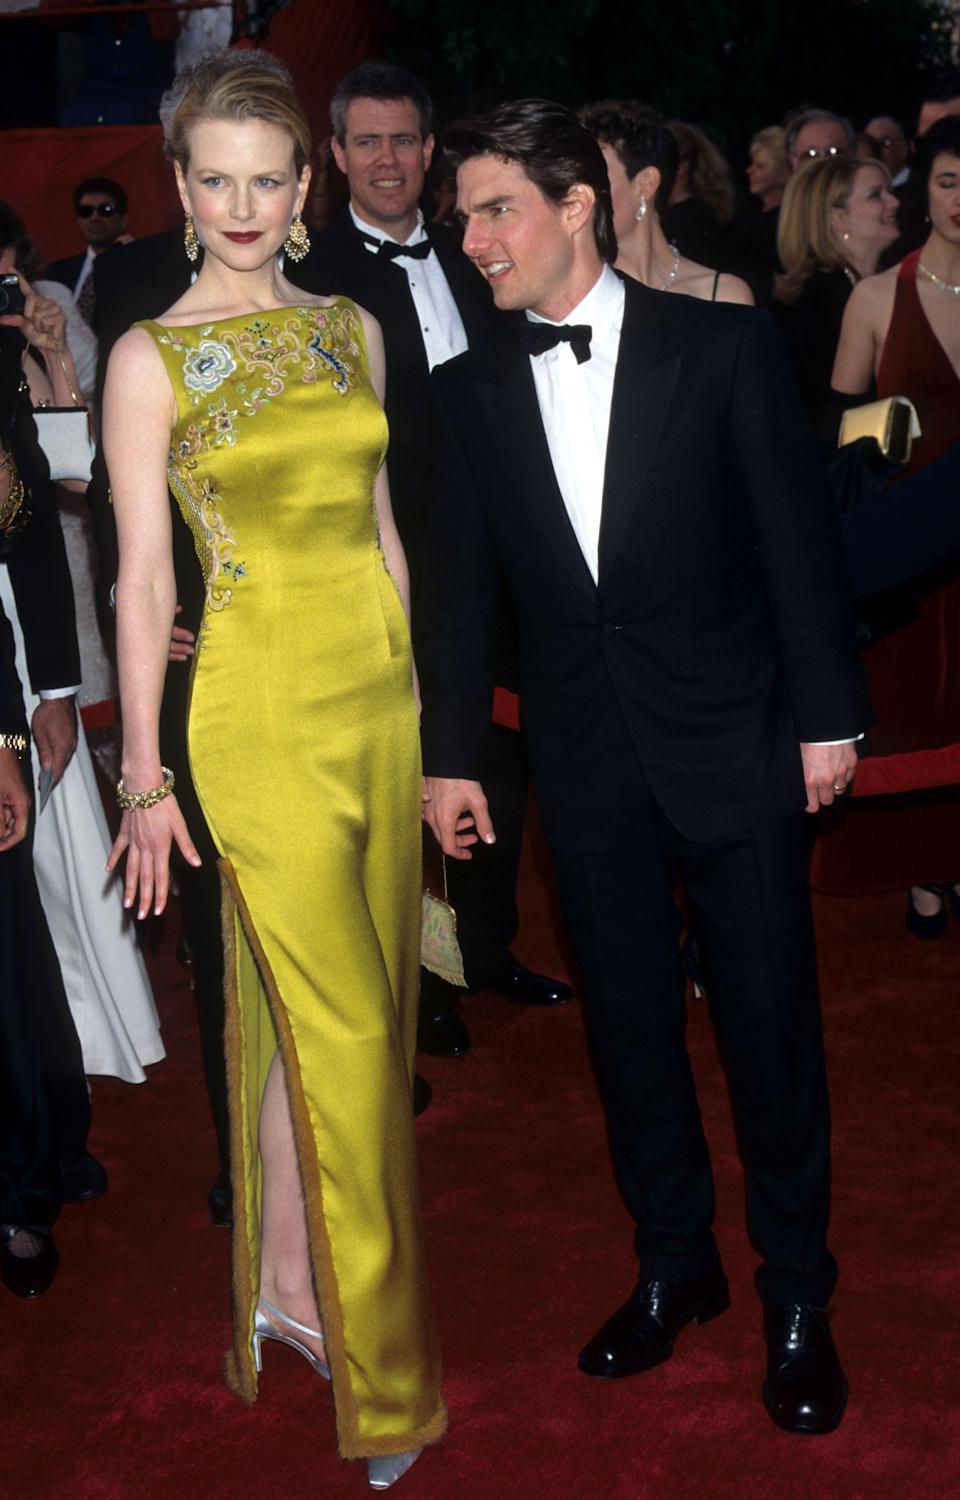 <p>Kidman's embroidered chartreuse gown remains one of her best looks to date. The look was designed especially for Kidman by Galliano, who had just been named head designer for Dior.</p>